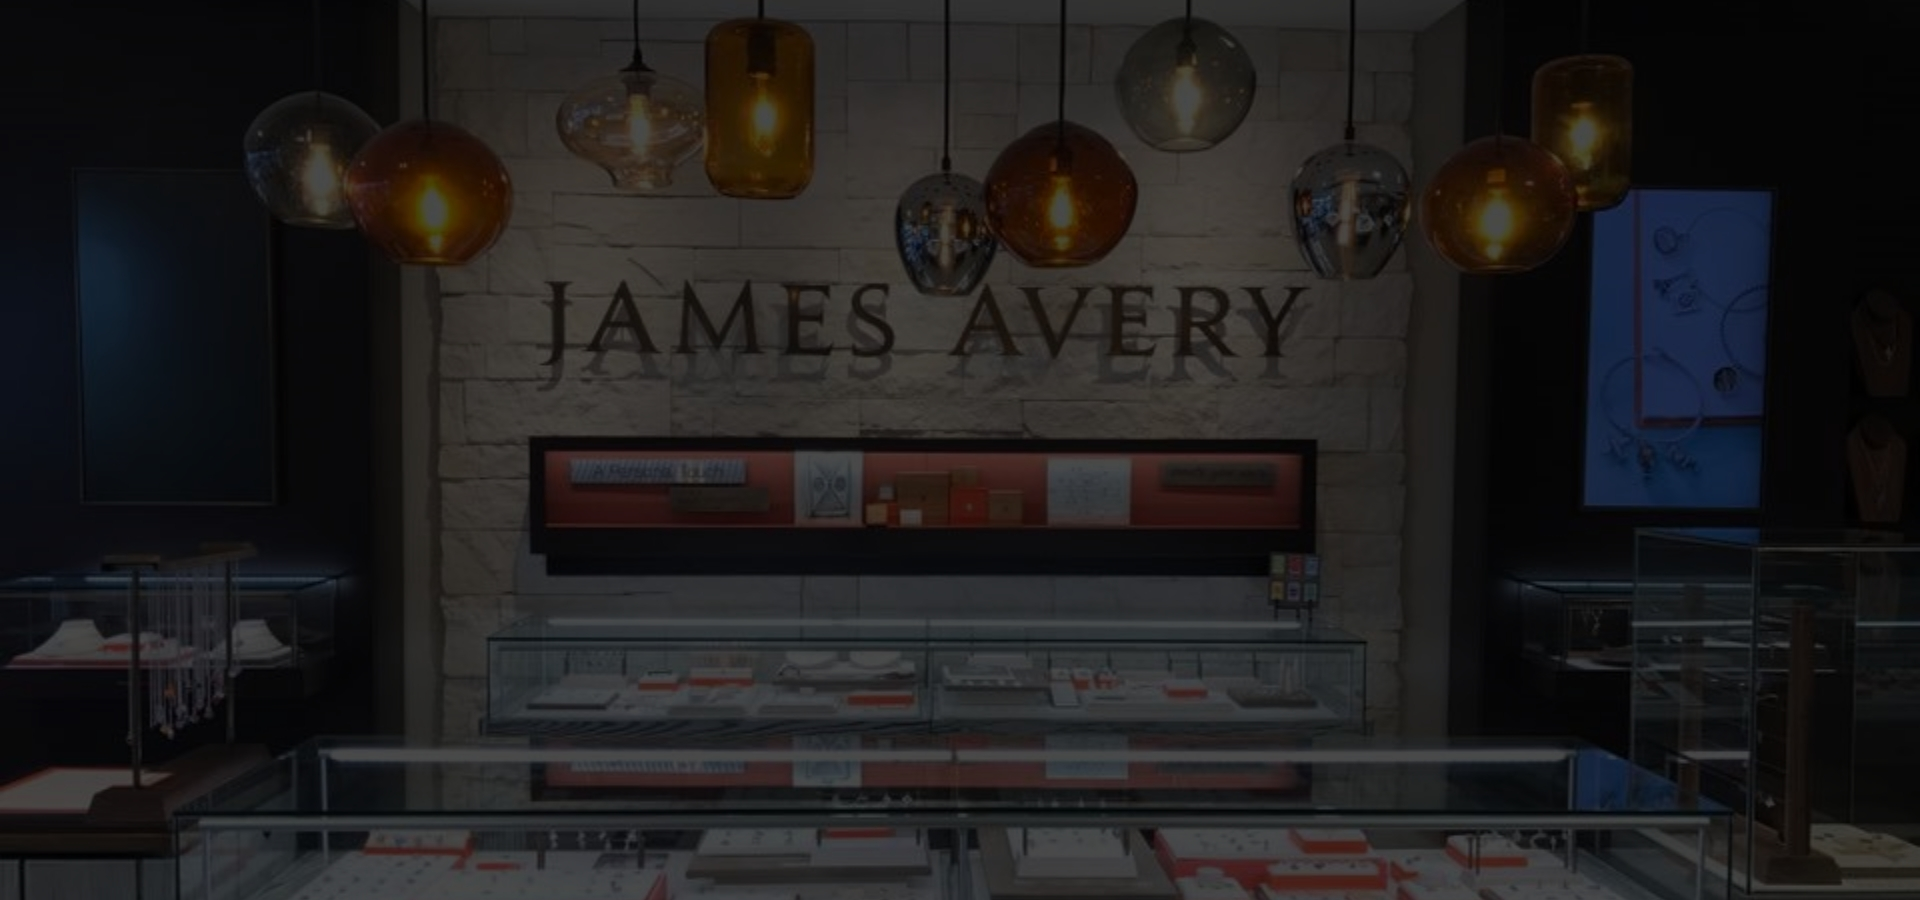 Wildts Wiring has worked with James Avery!